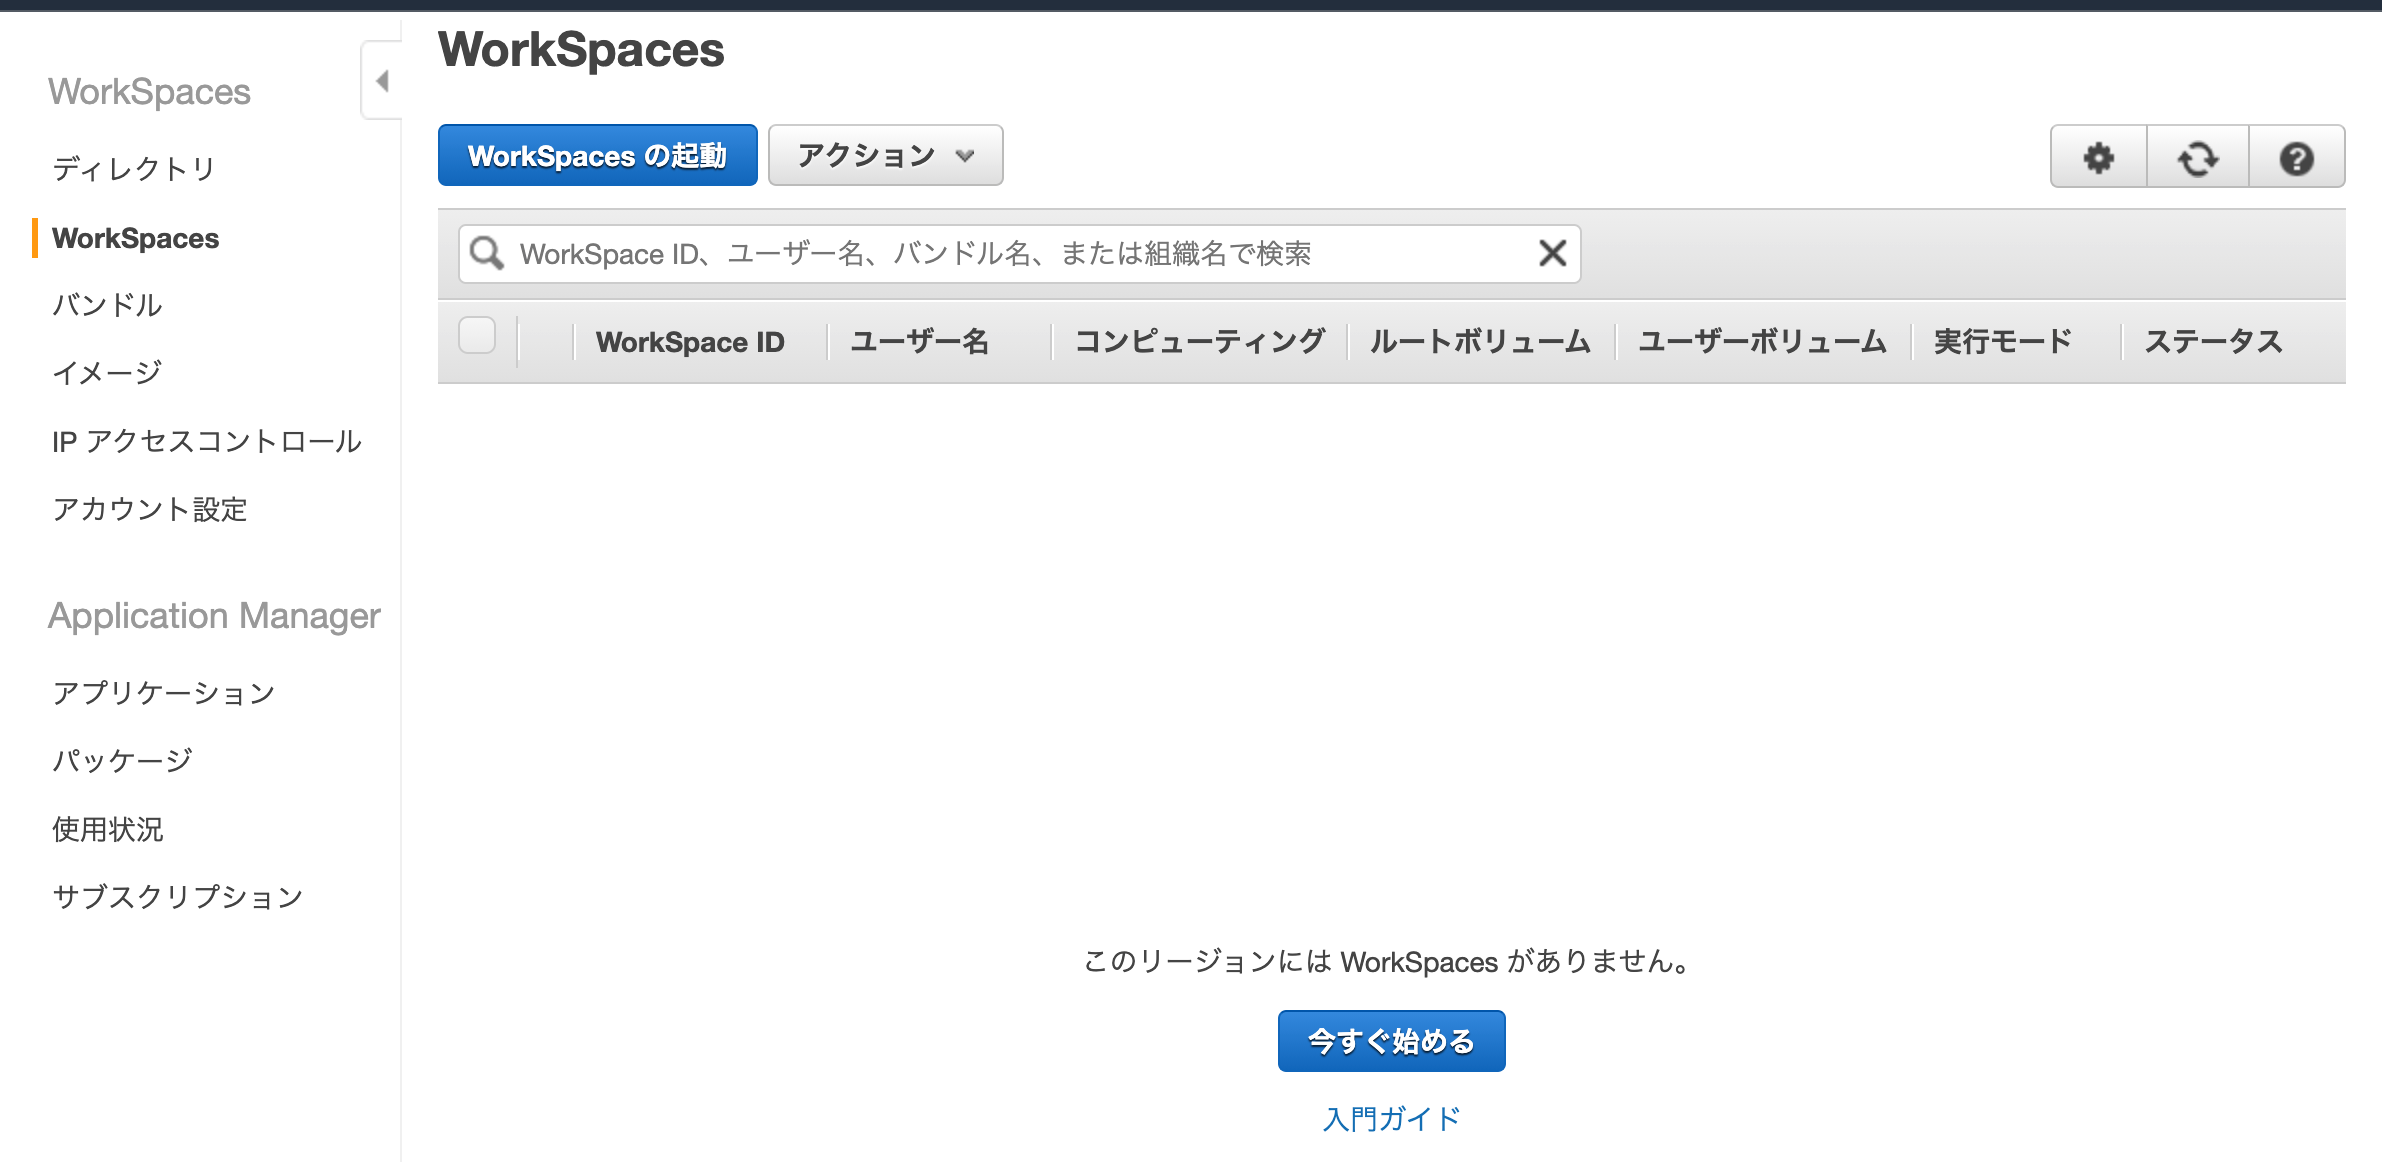 workspace-launch.png